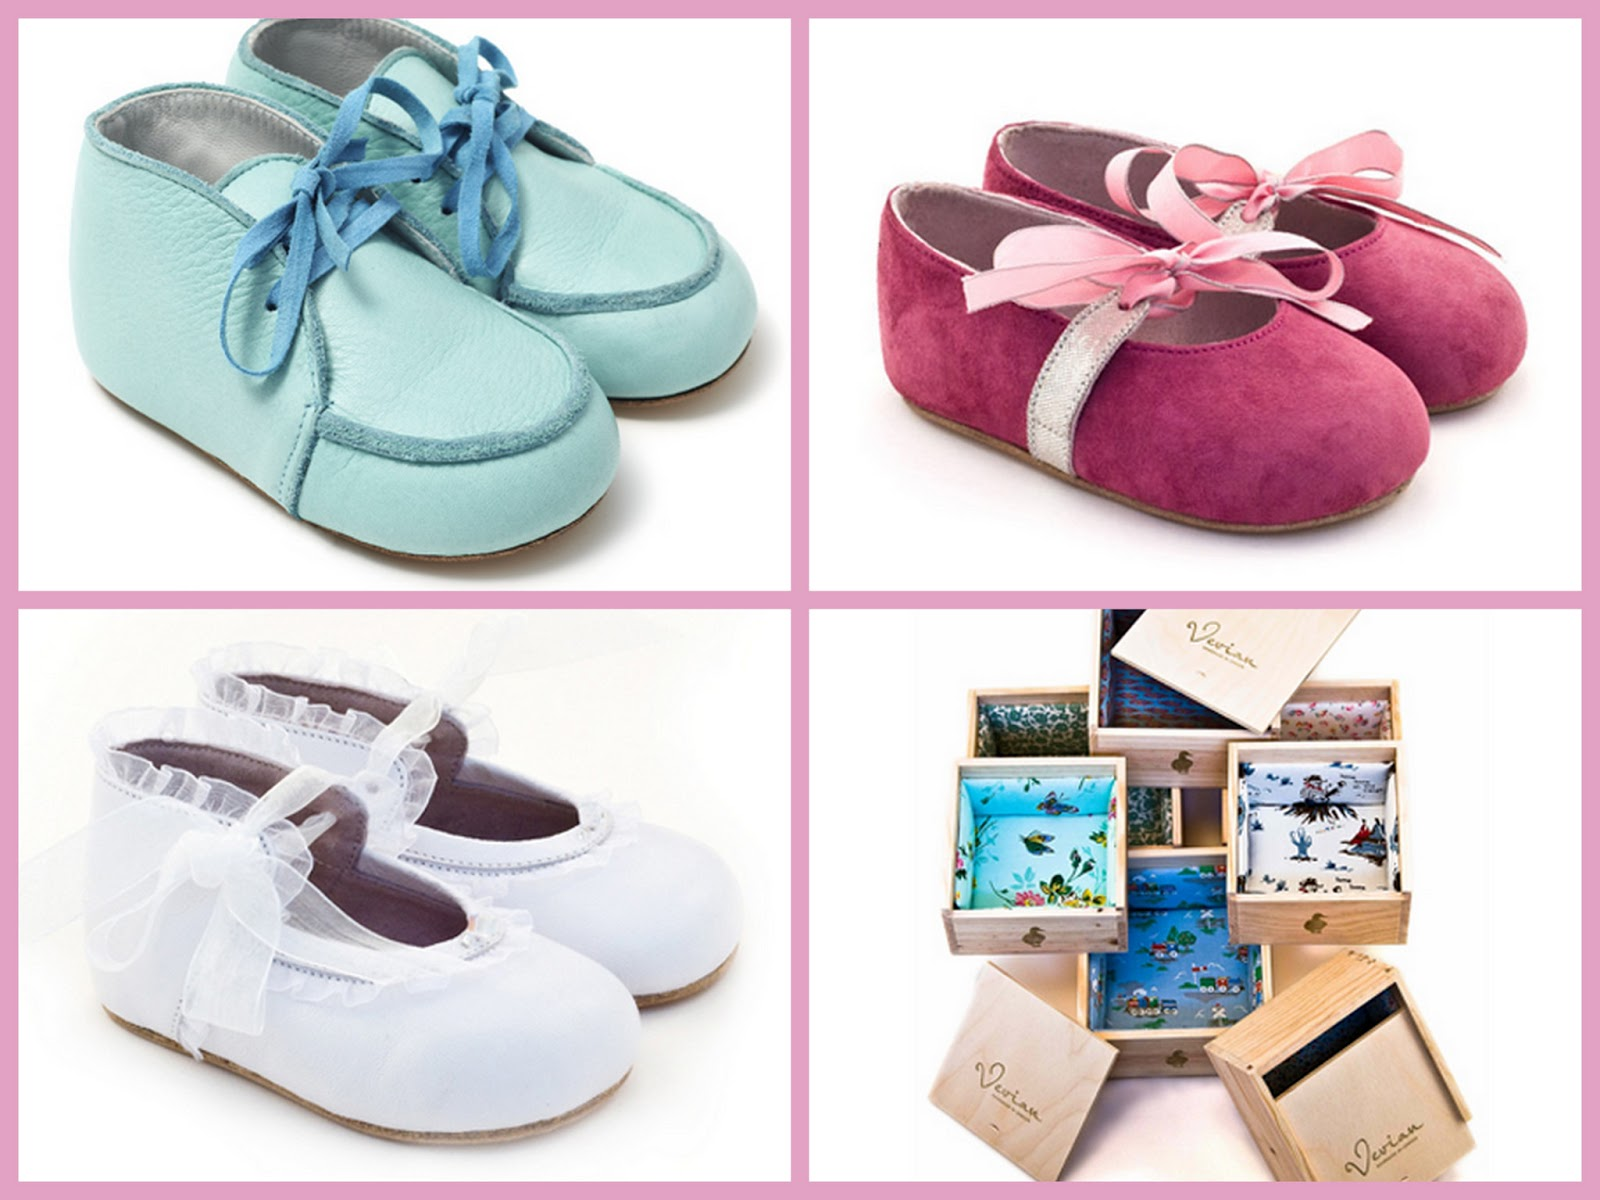 From top left clockwise, Matthew £95, Emily £89, assorted shoe boxes and Jessica £95